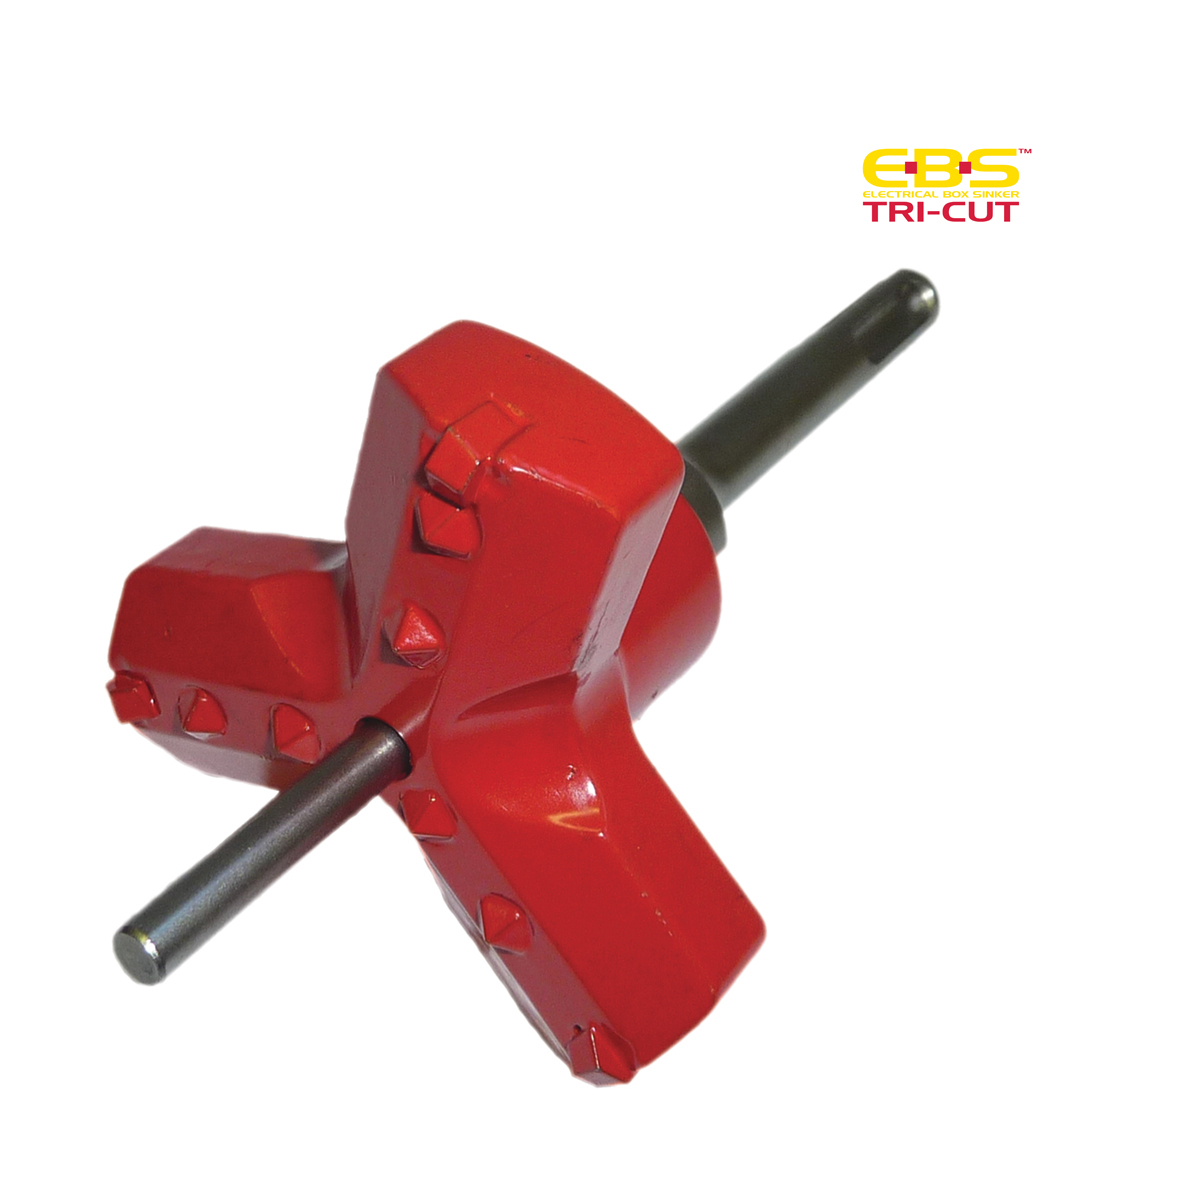 Tri-Cut Round Cutter c/w SDS Plus Drive Adaptor